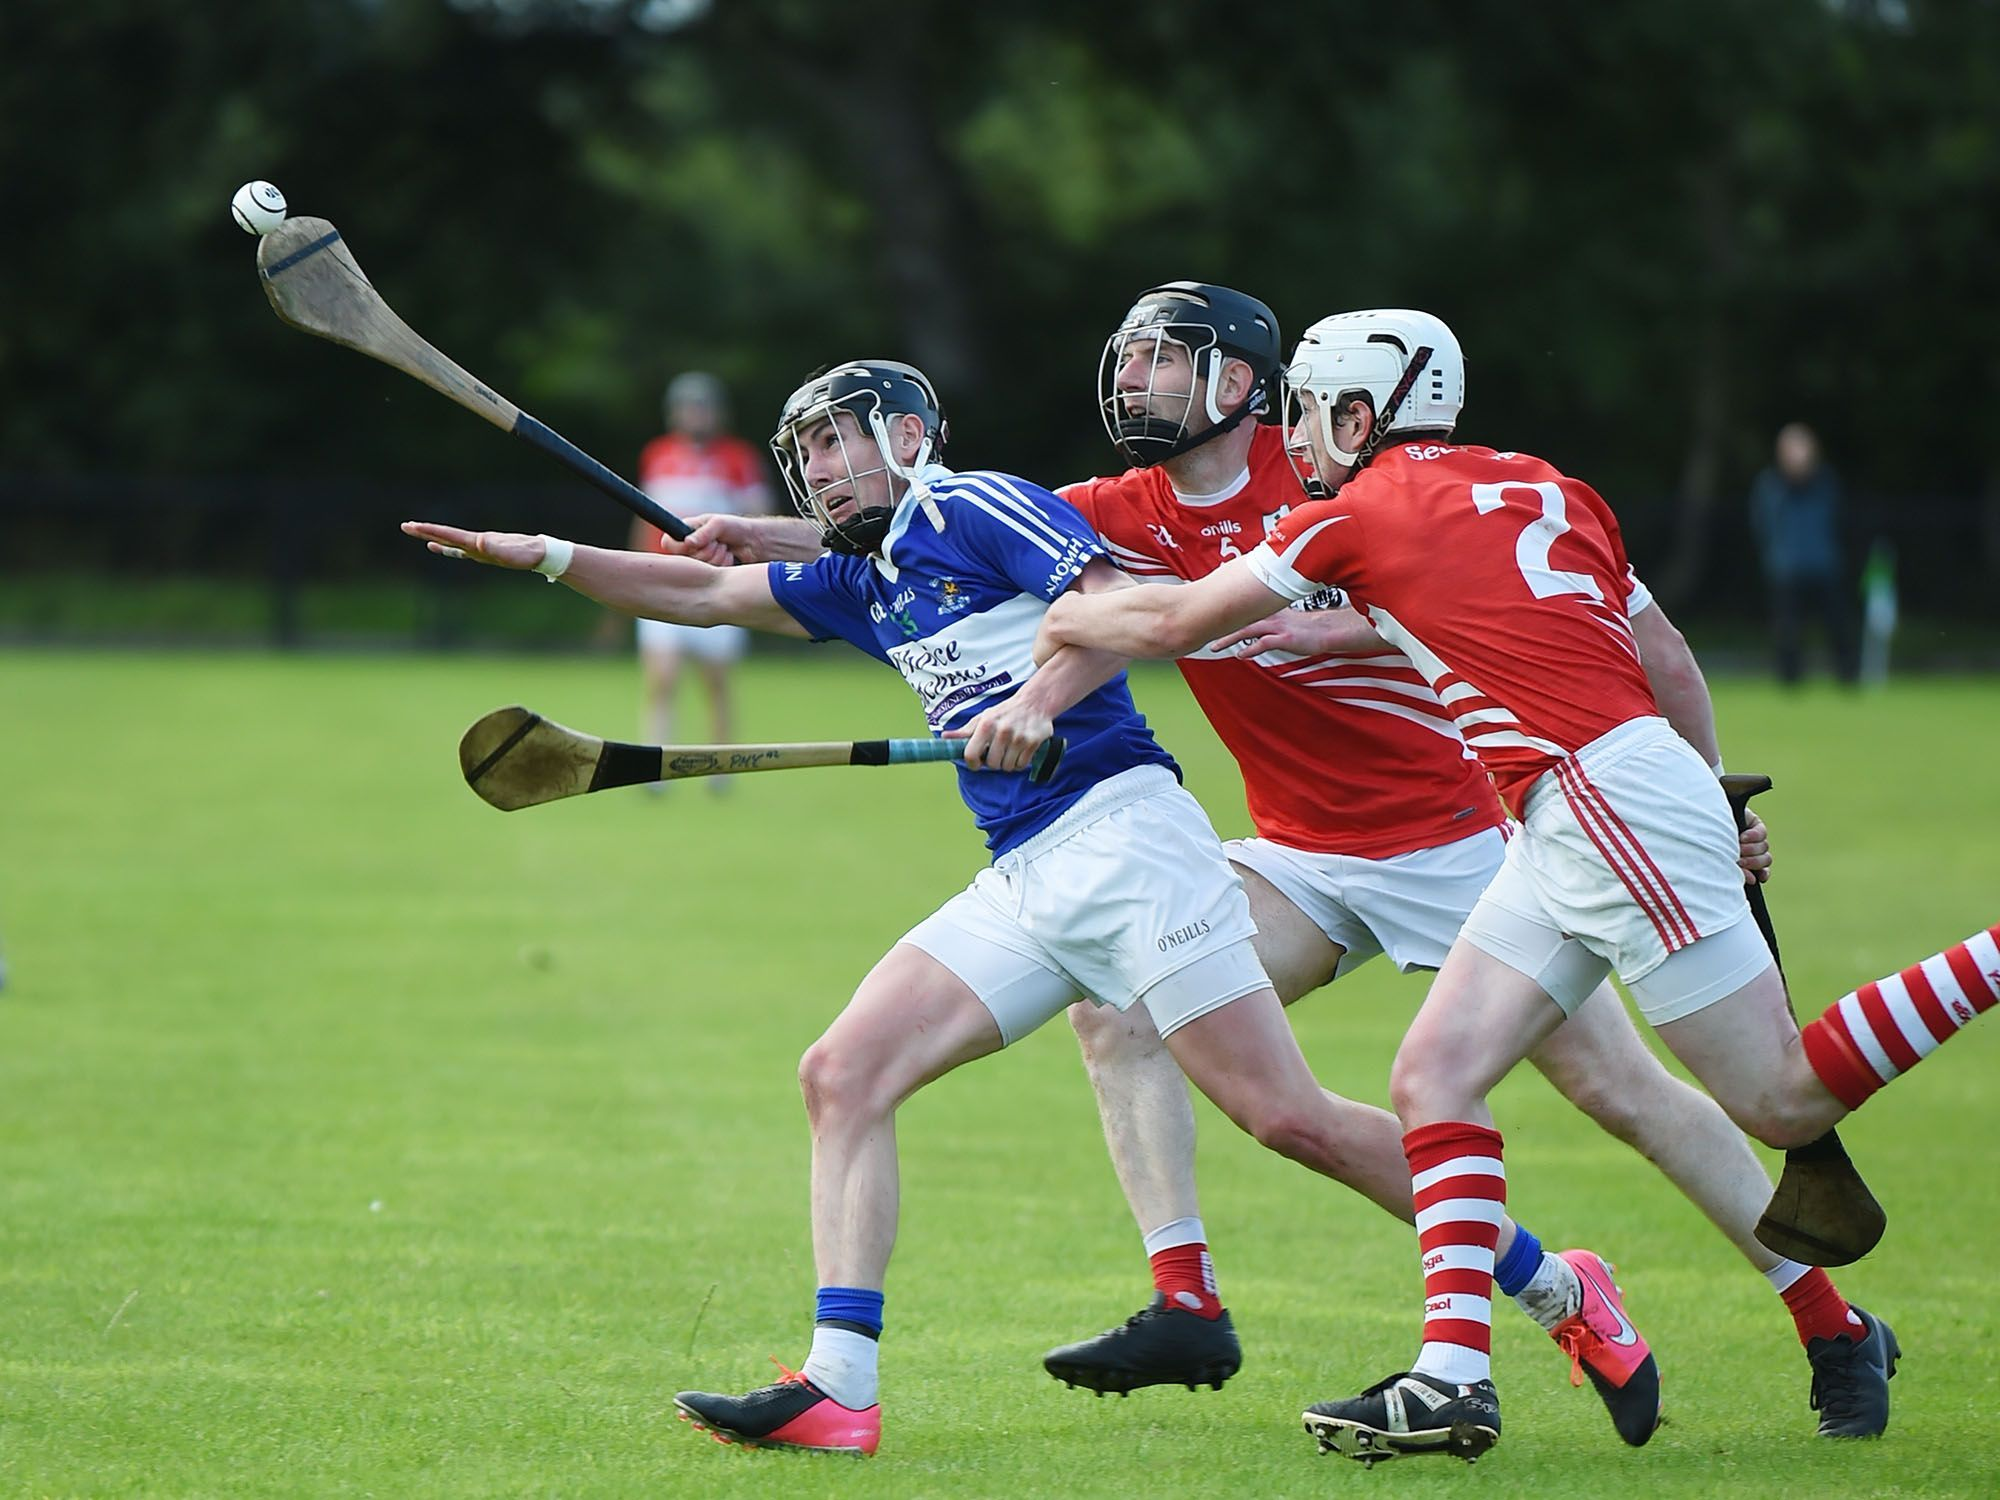 Peter McCallin is one of three St John\'s players who are newcomers on the Antrim hurling squad this year